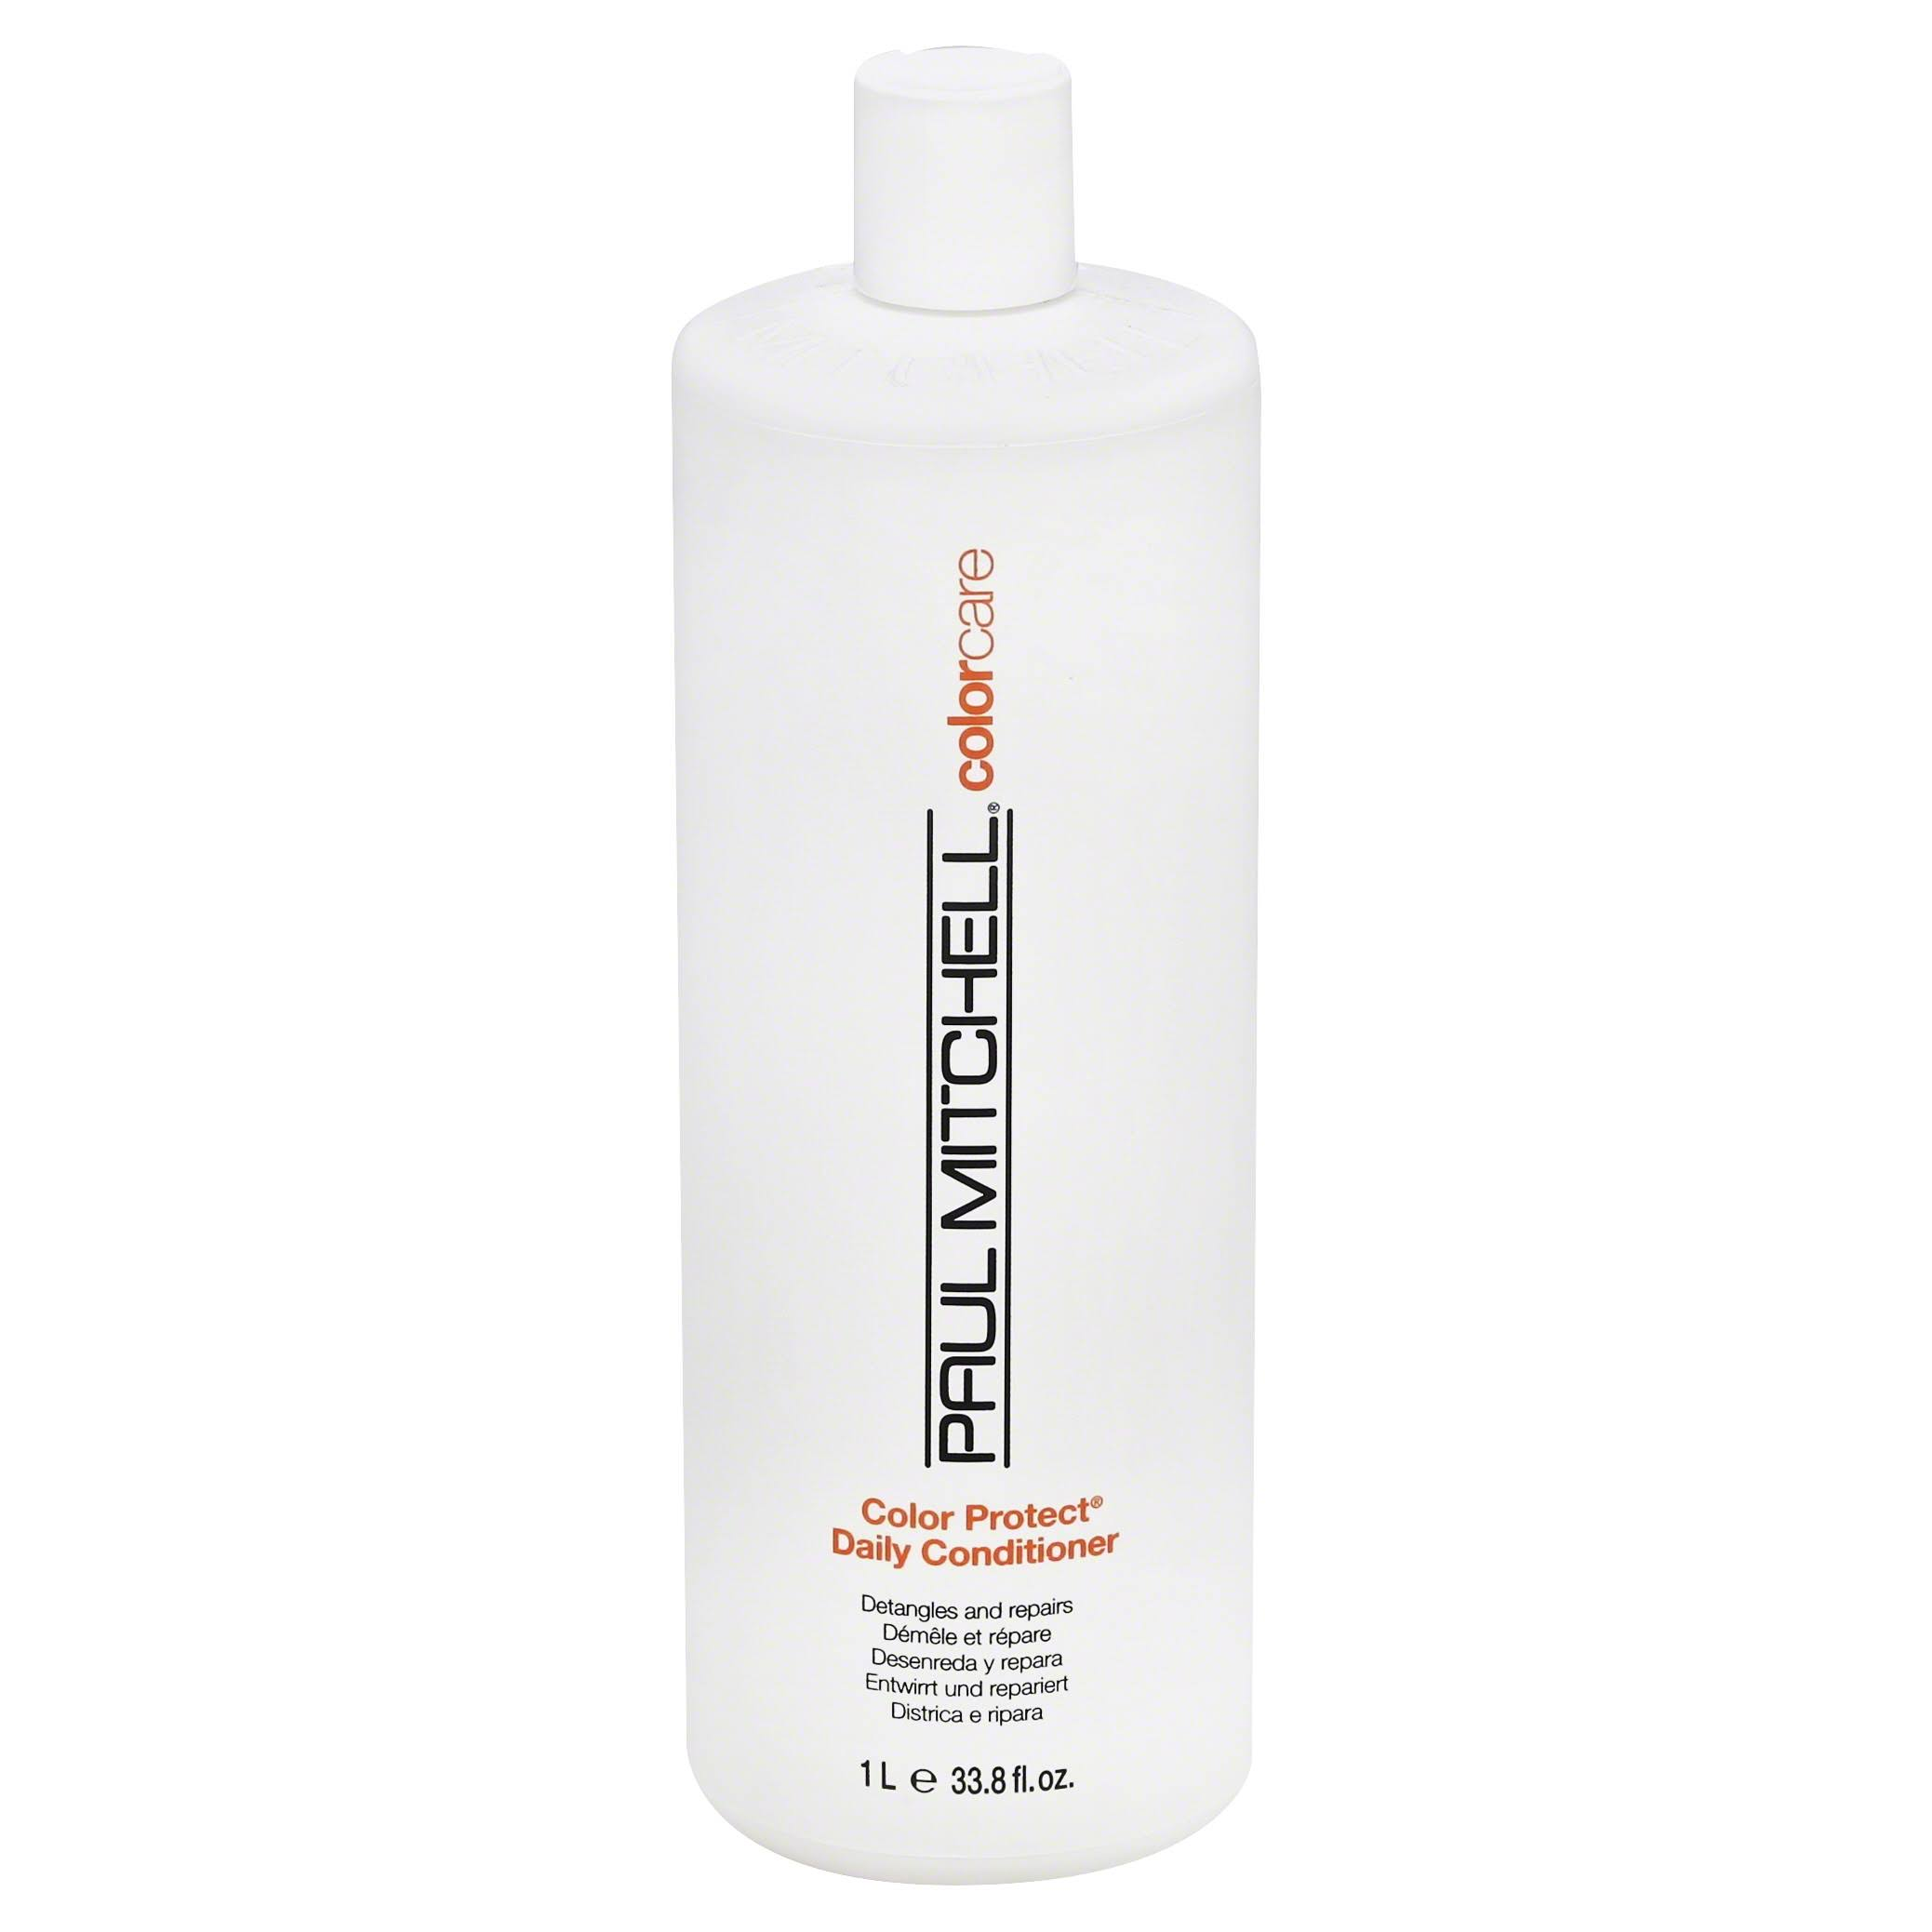 Paul Mitchell Color Protect Daily Conditioner - 1l